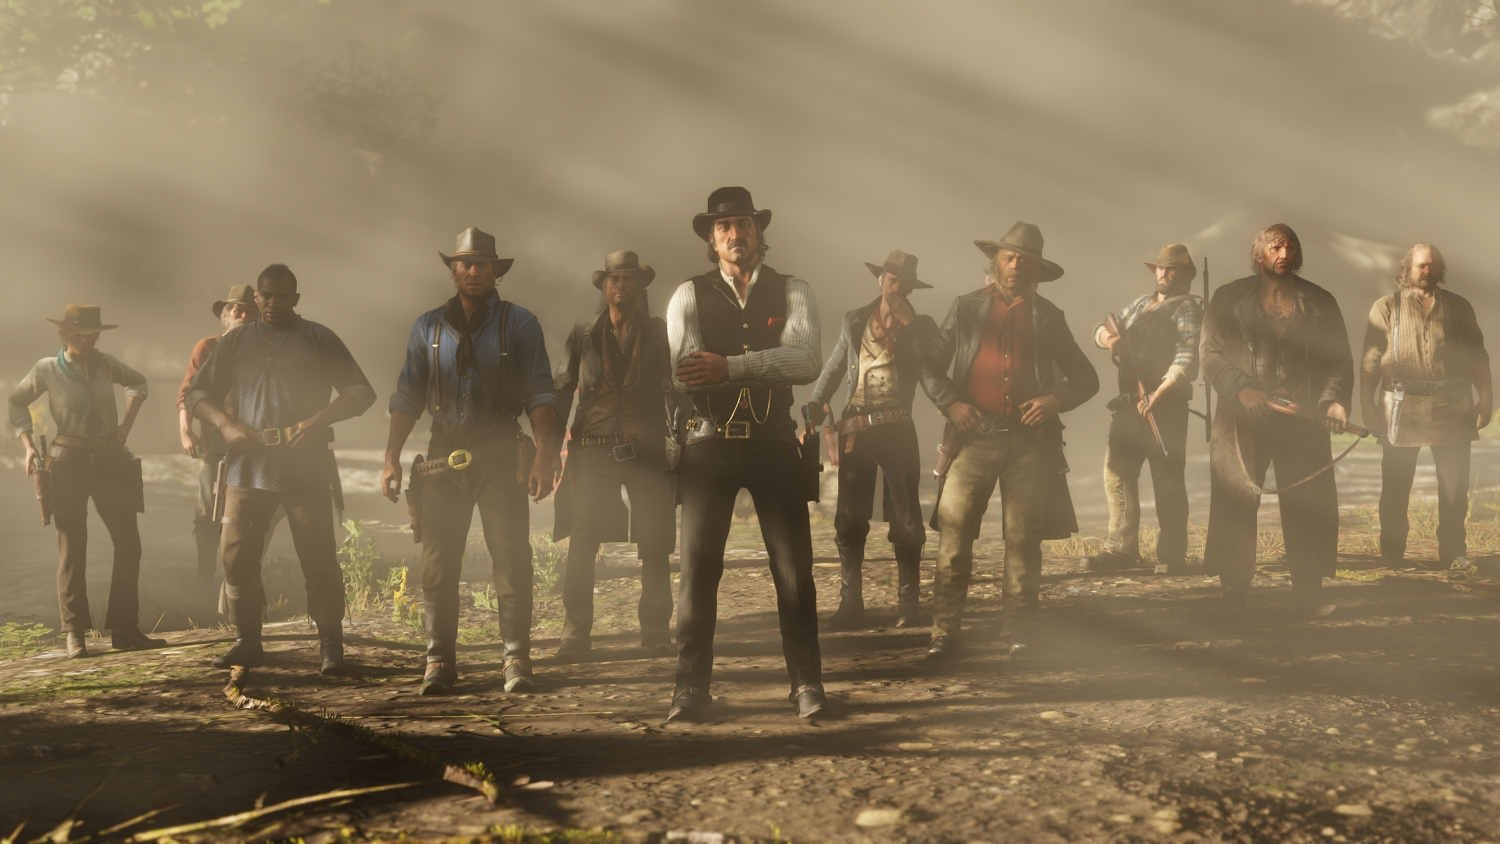 Rockstar Games face lawsuit from real-life Pinkertons over Red Dead Redemption II